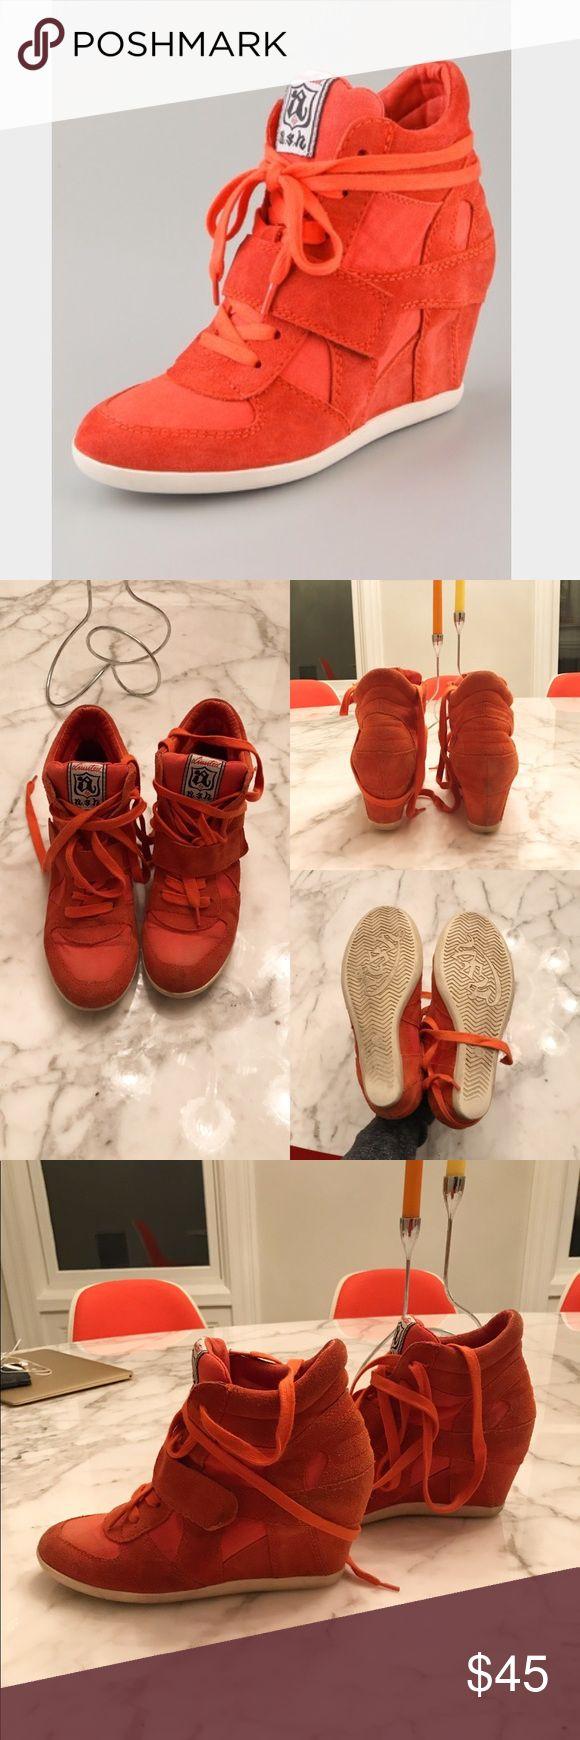 Ash Bowie Wedge Sneakers Bowie sneakers in orange suede from Ash. Super comfortable, this style has been seen on countless celebs. I am moving and need to clear out my closet - these are worn but have no flaws affecting wearability and could be cleaned easily by a professional. Size 38, best fits US 7. Ash Shoes